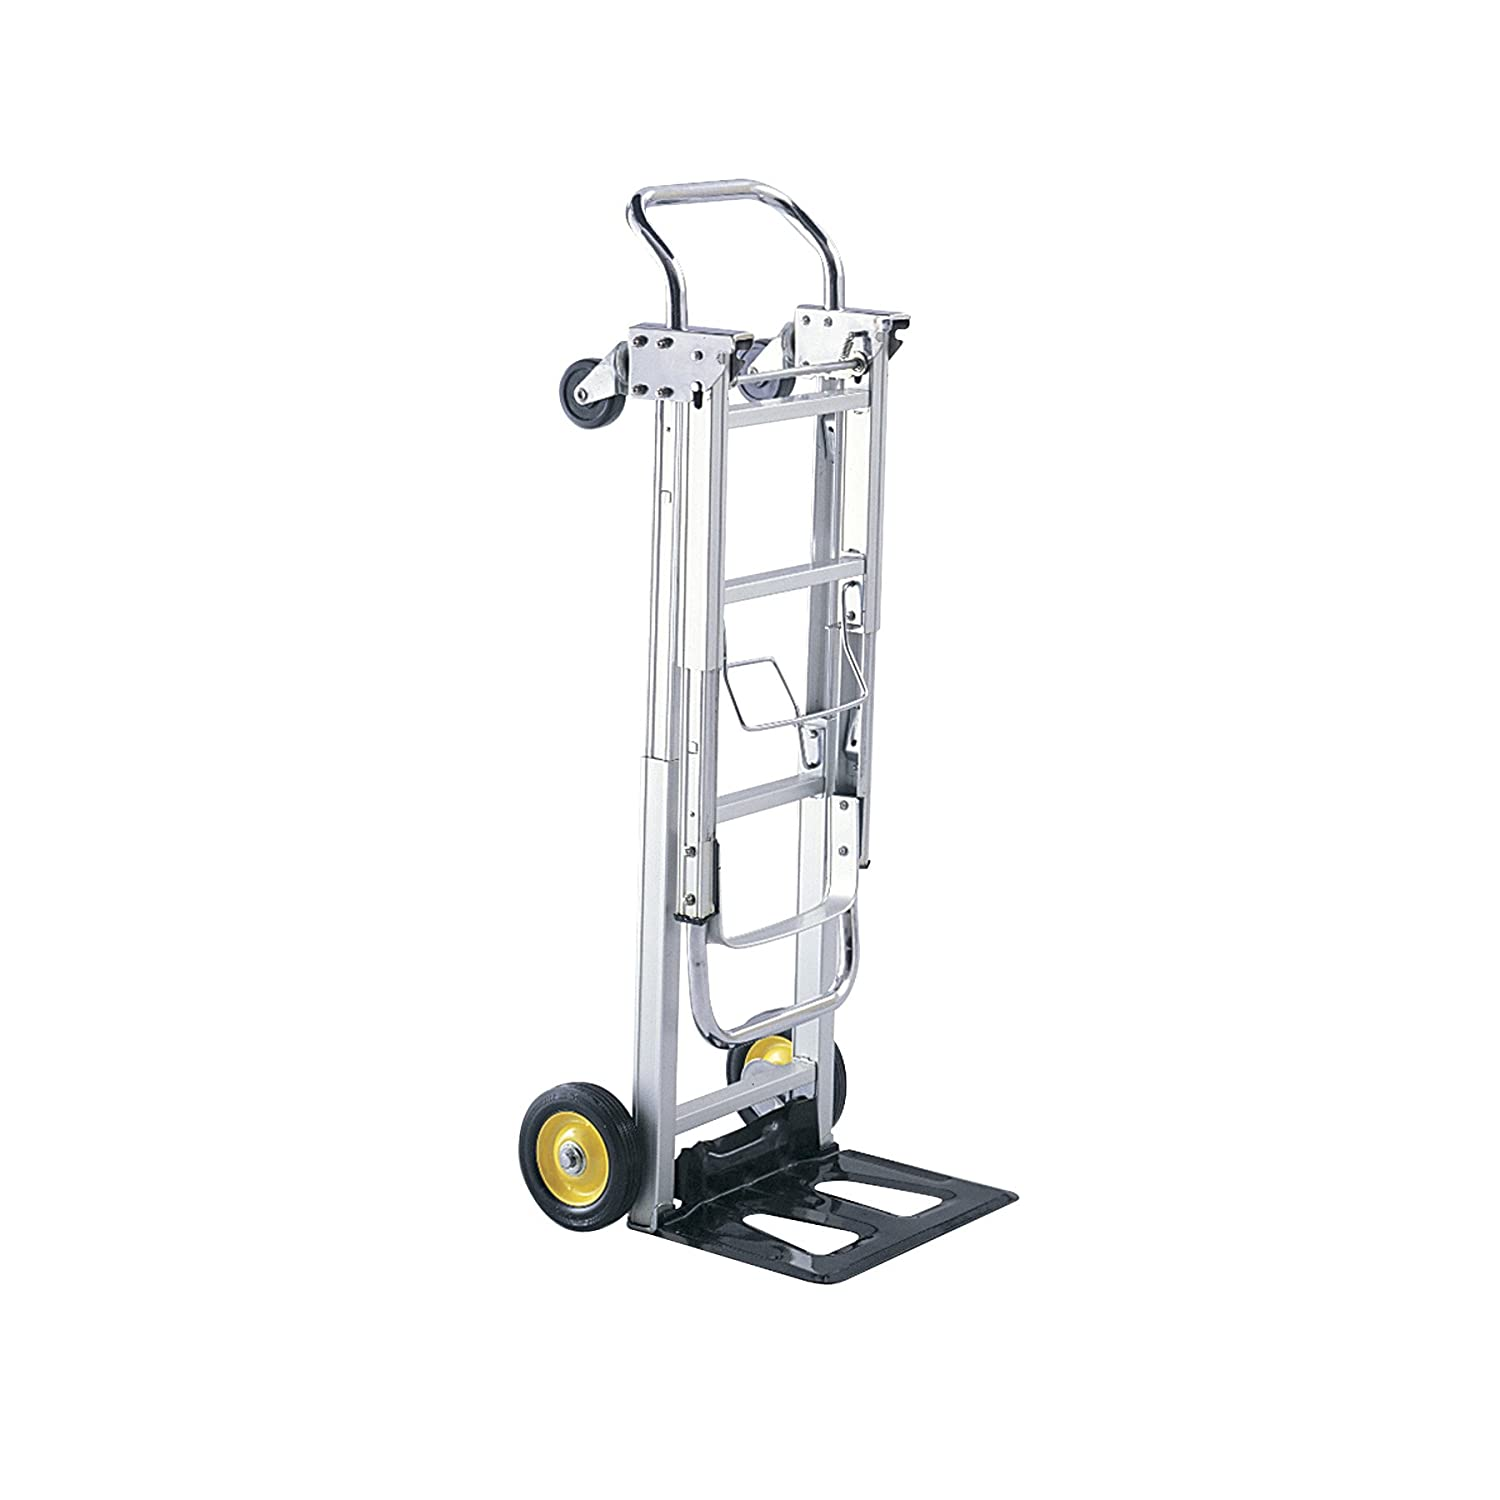 Safco Products Hide Away Convertible Hand Truck 4050 Dual Function 400 lbs. Total Capacity Aluminum Frame